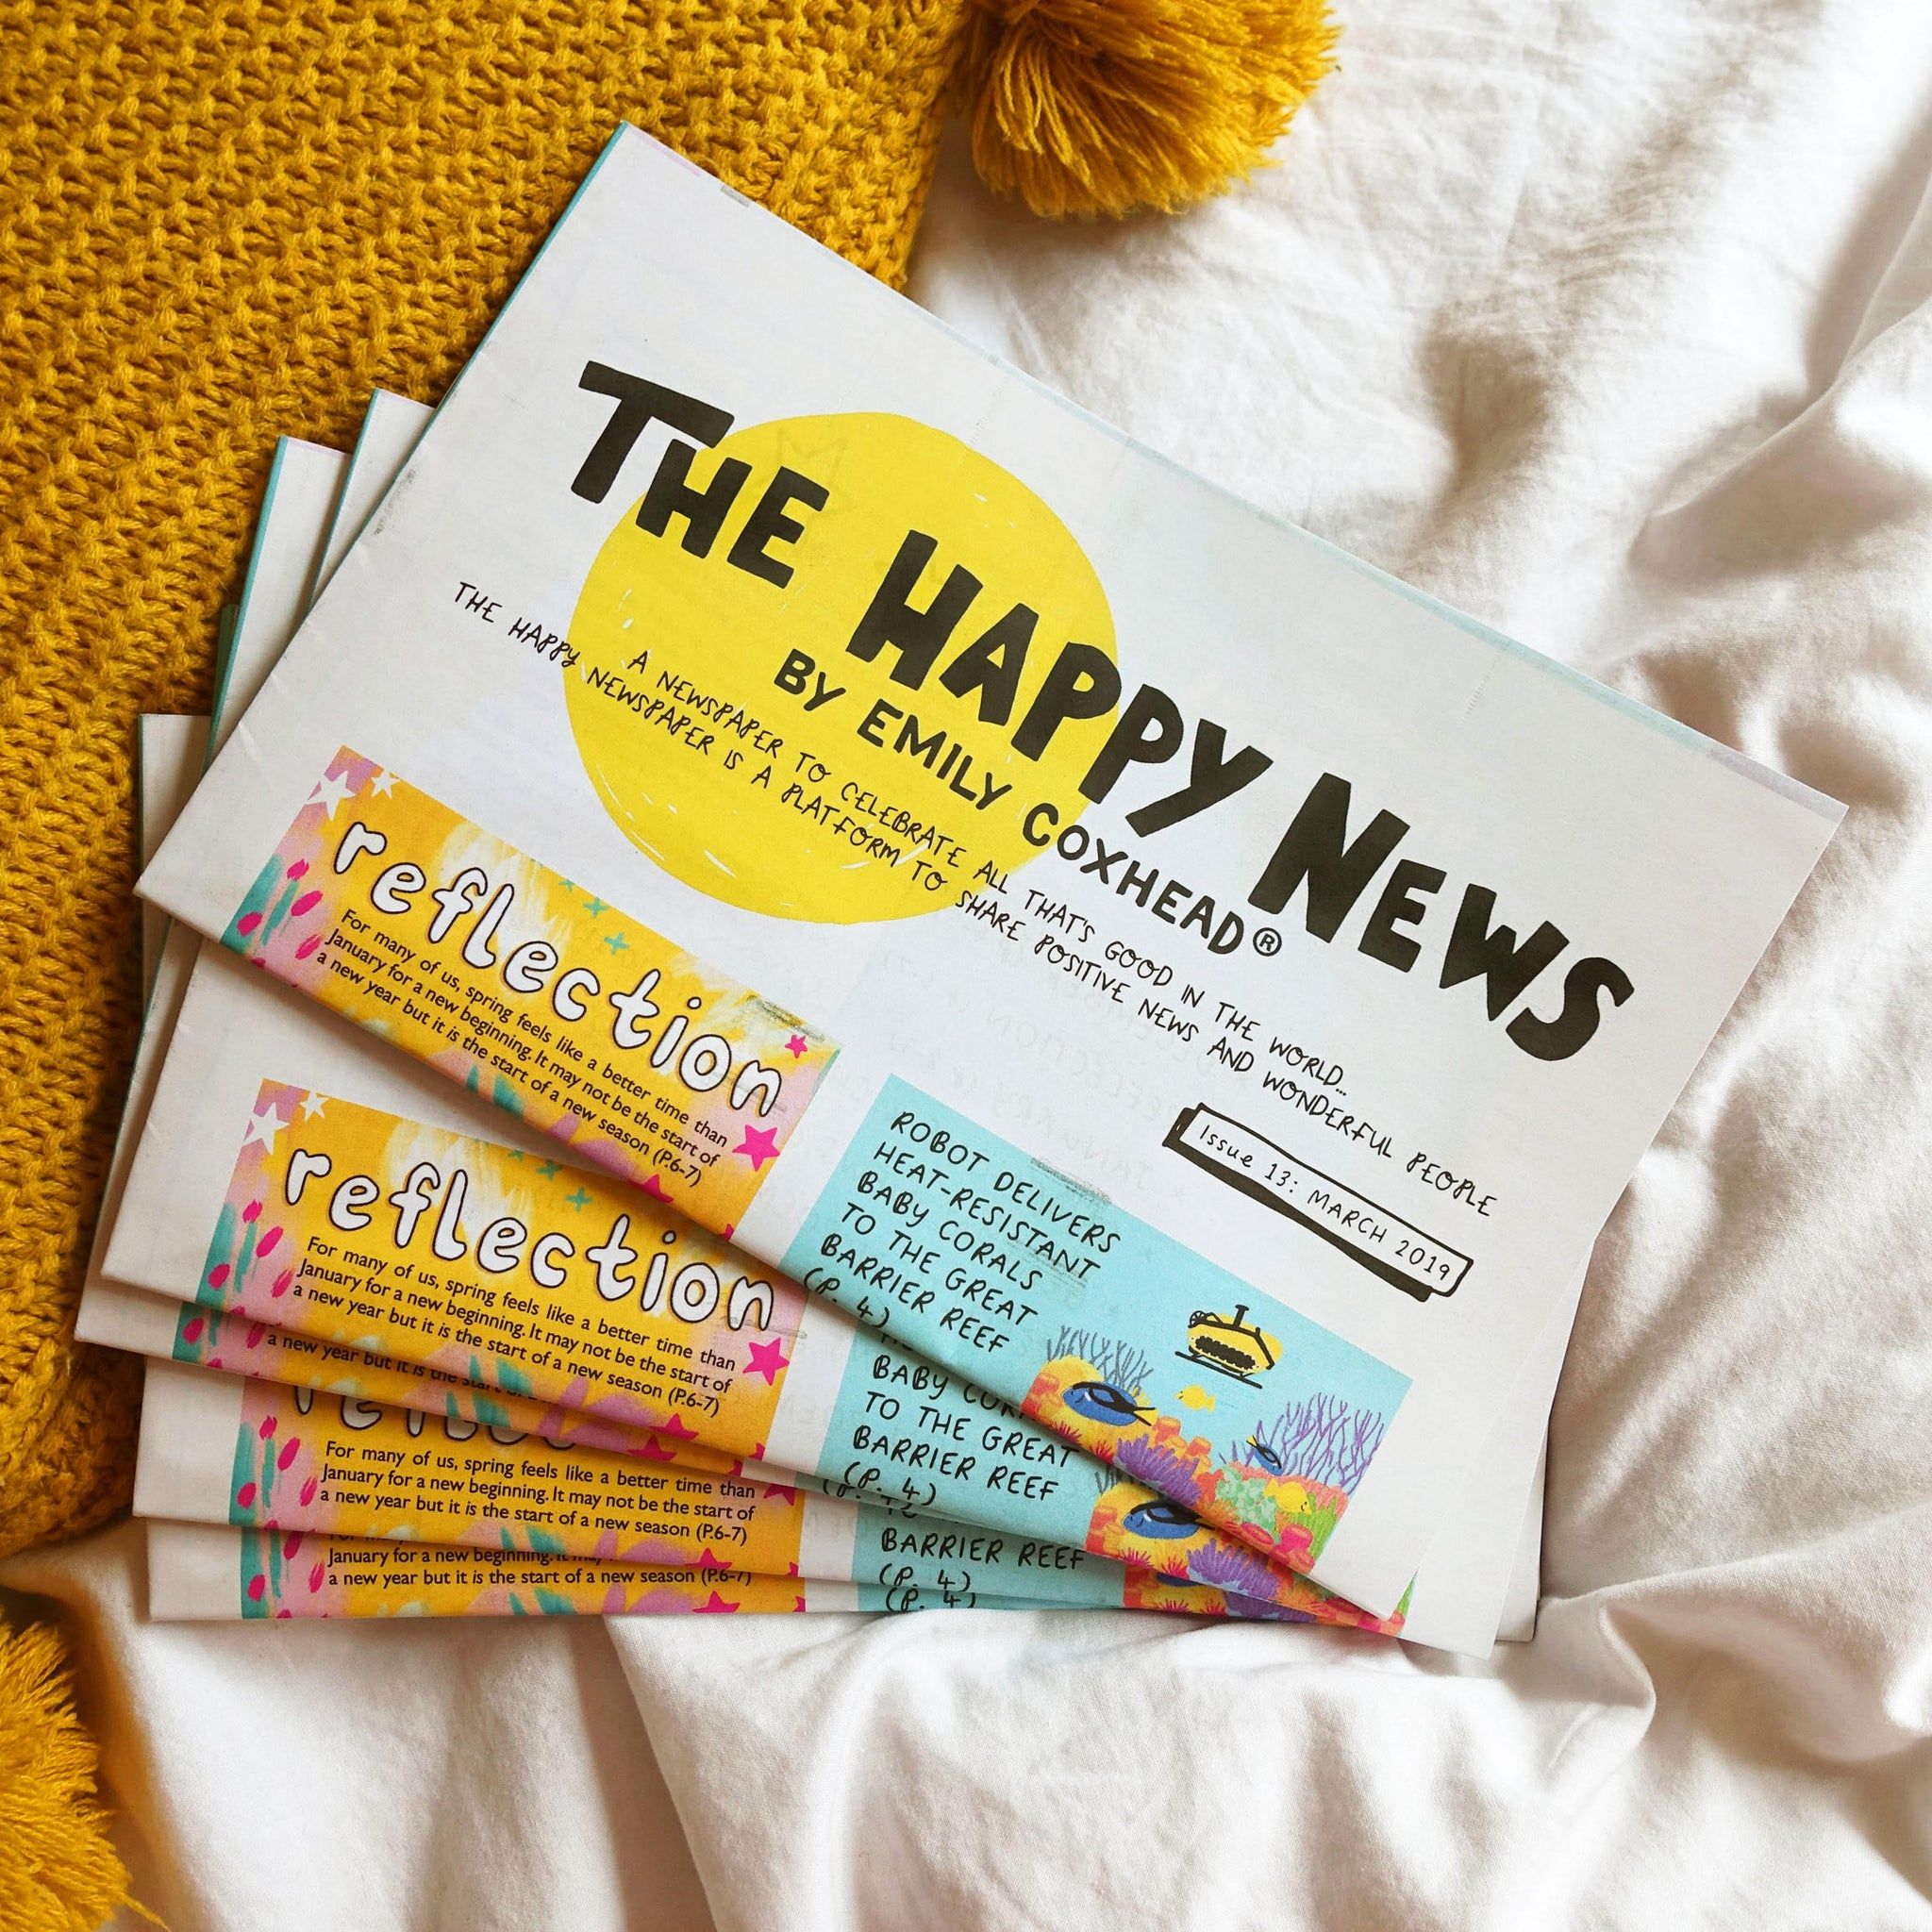 The Happy Newspaper - Issue 19